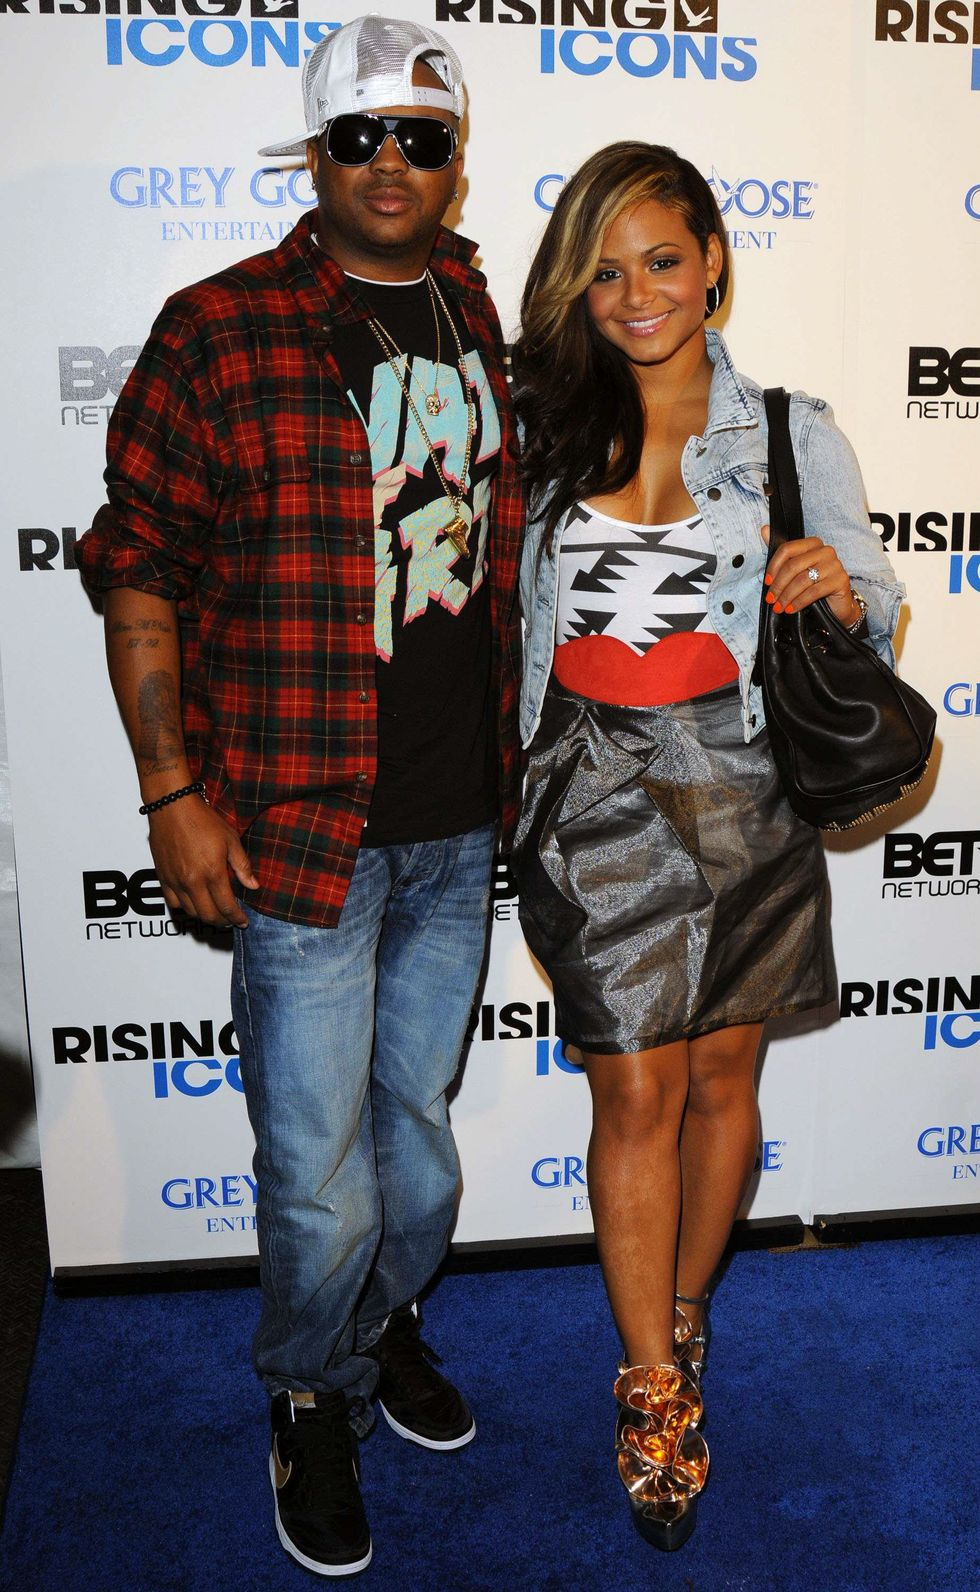 christina-milian-rising-icons-event-in-new-york-01